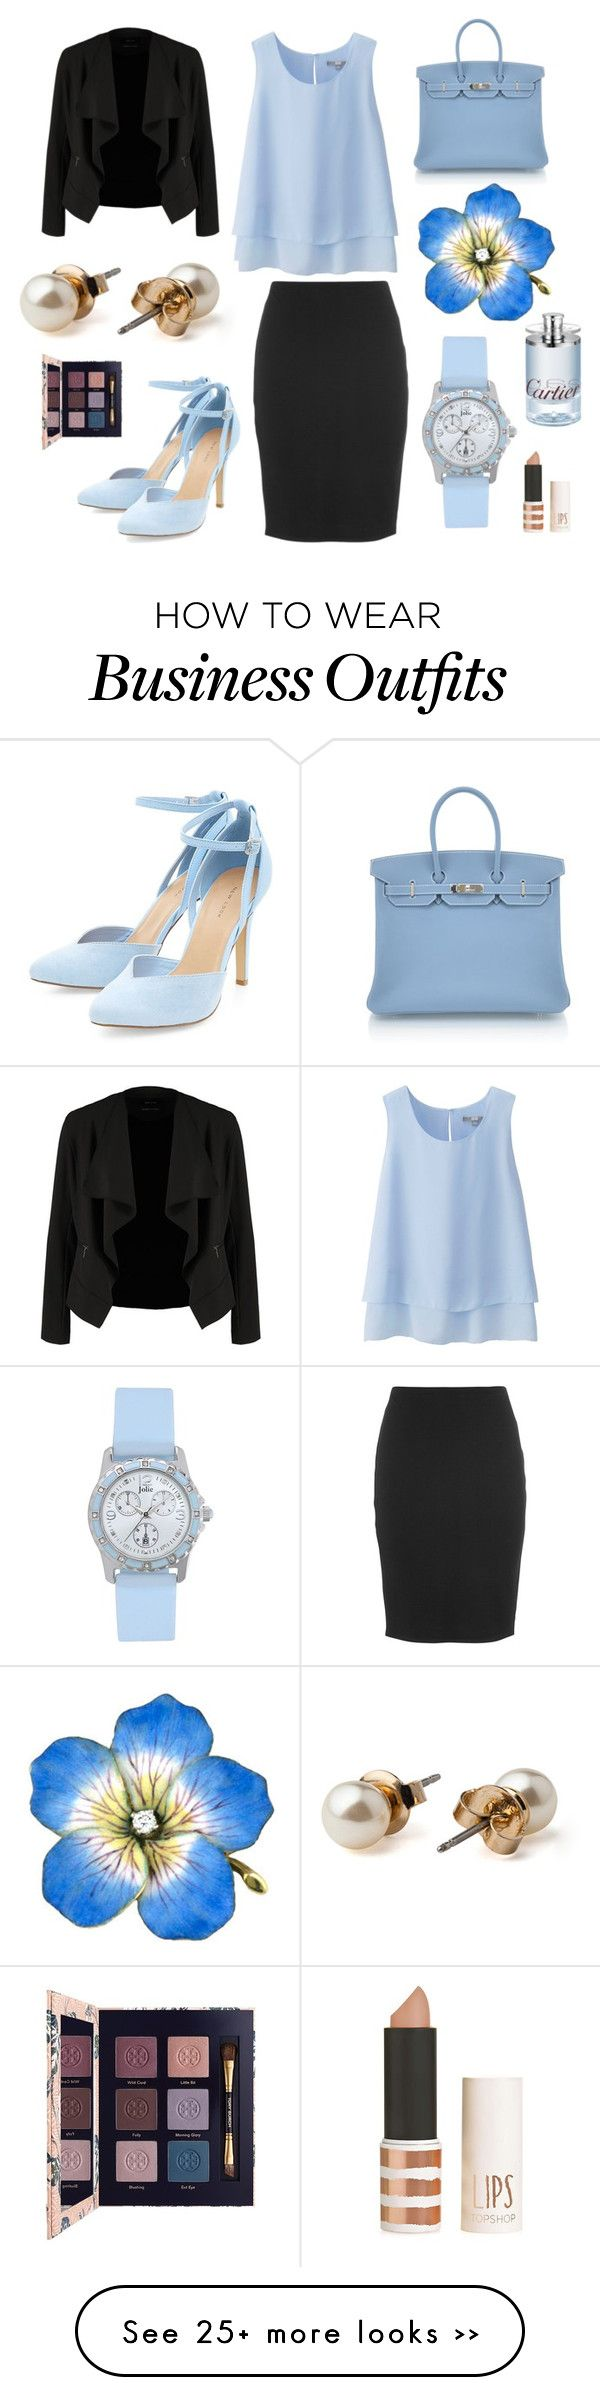 """""""Work Wear"""" by nicole231 on Polyvore"""